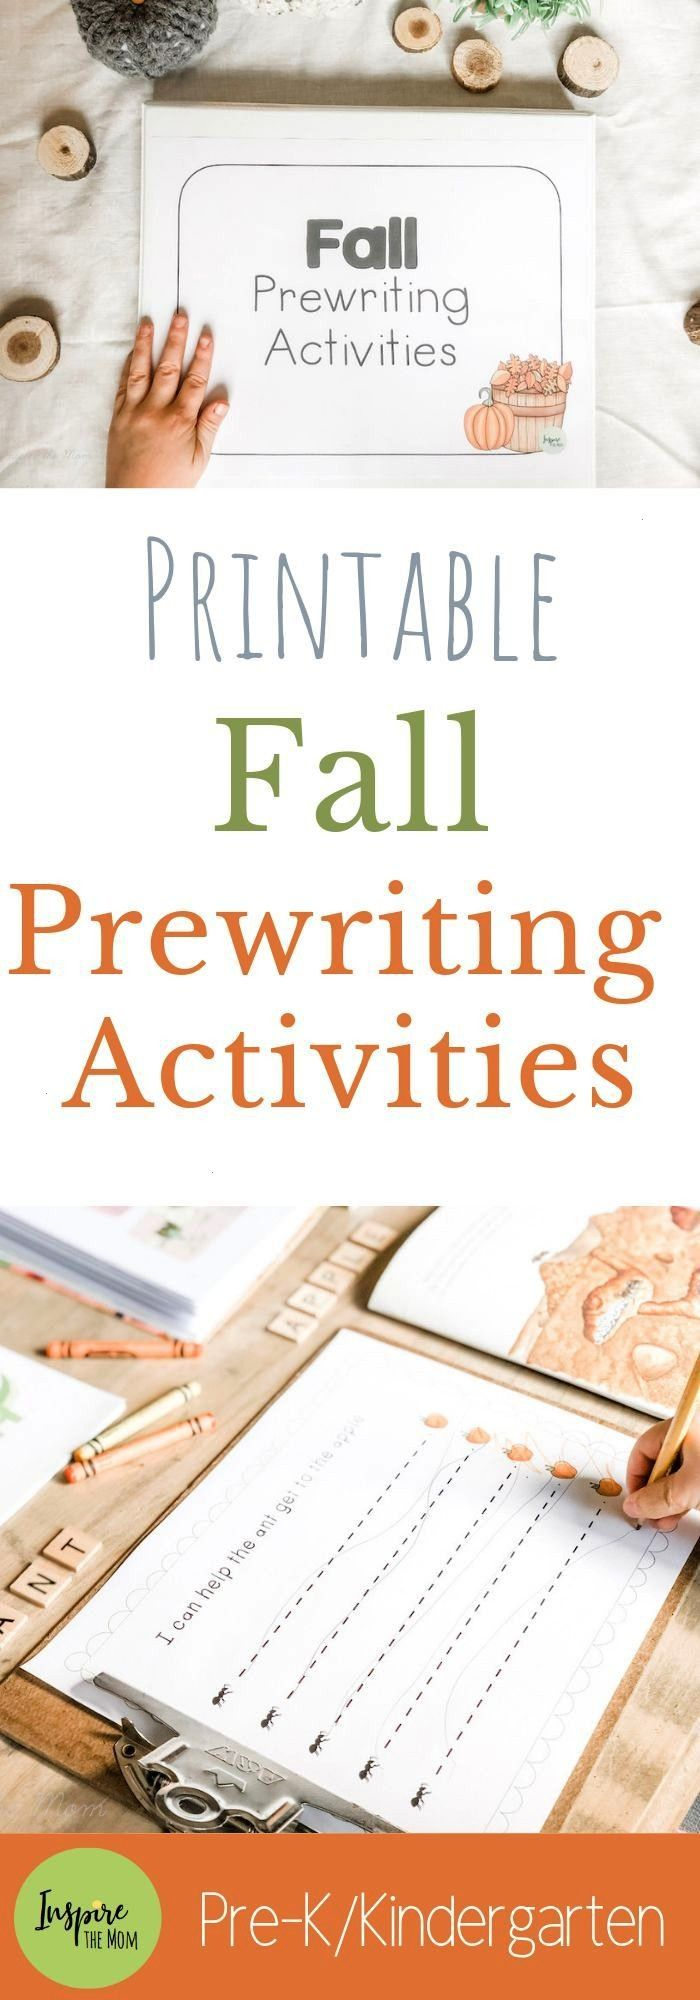 Prewriting Activities - Inspire the Mom Fall Prewriting Activities! Basic strokes, shapes, patterns